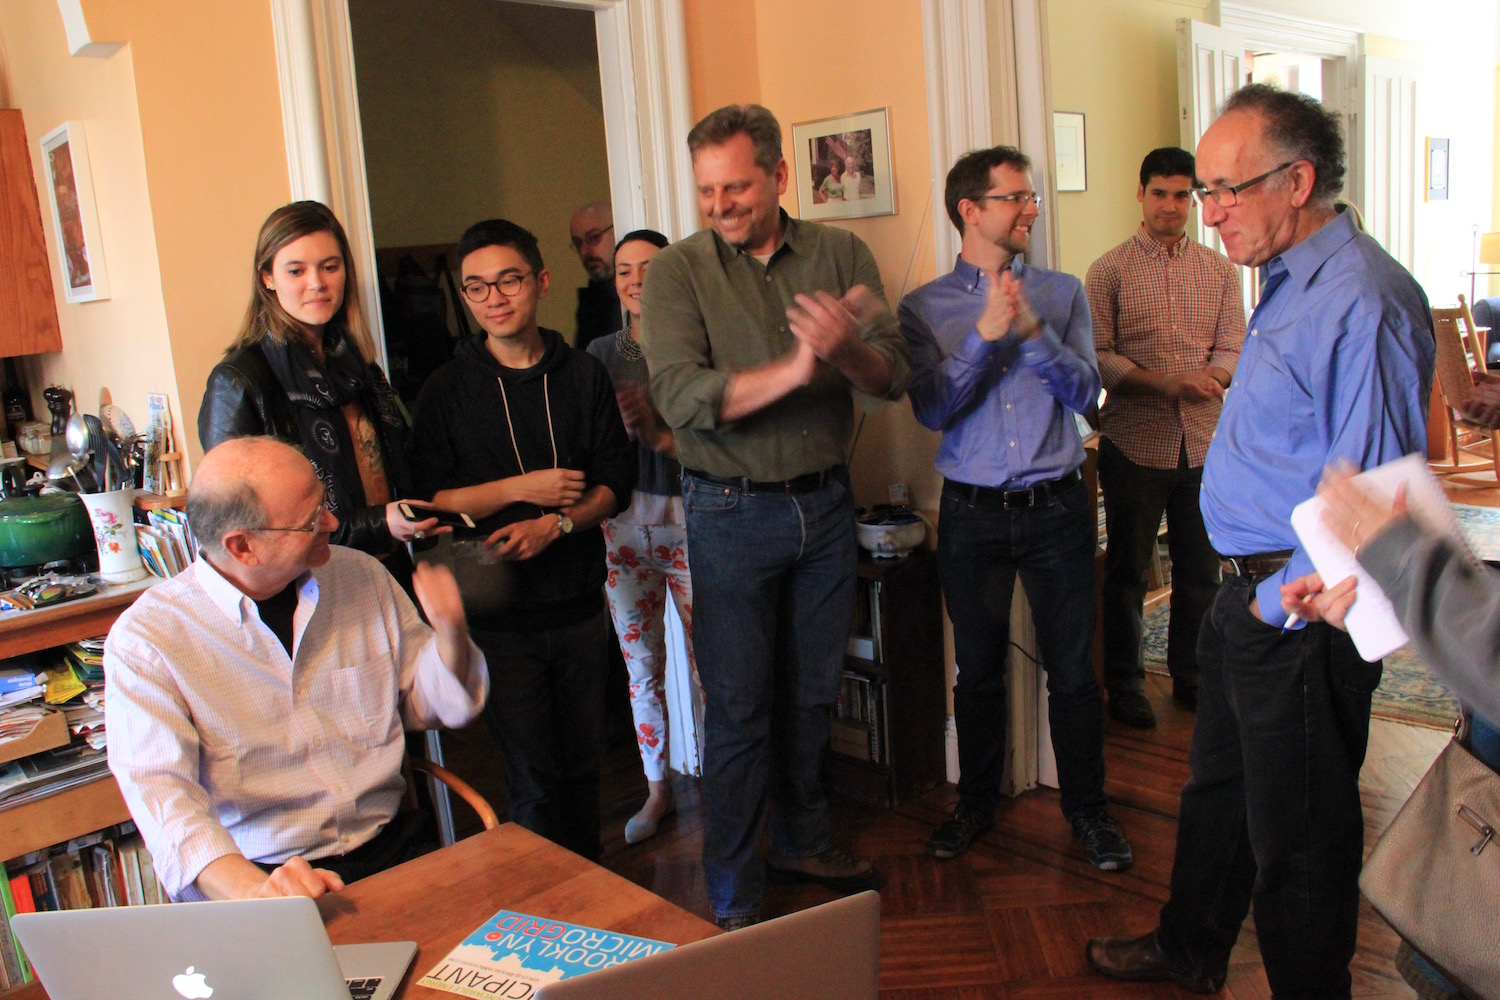 LO3 co-founder, Lawrence Orsini, center, applauds on Monday, April 11, 2016 as Bob Sauchelli, far left, using Transactive Grid technology to buy green energy credits from Eric Frumin.